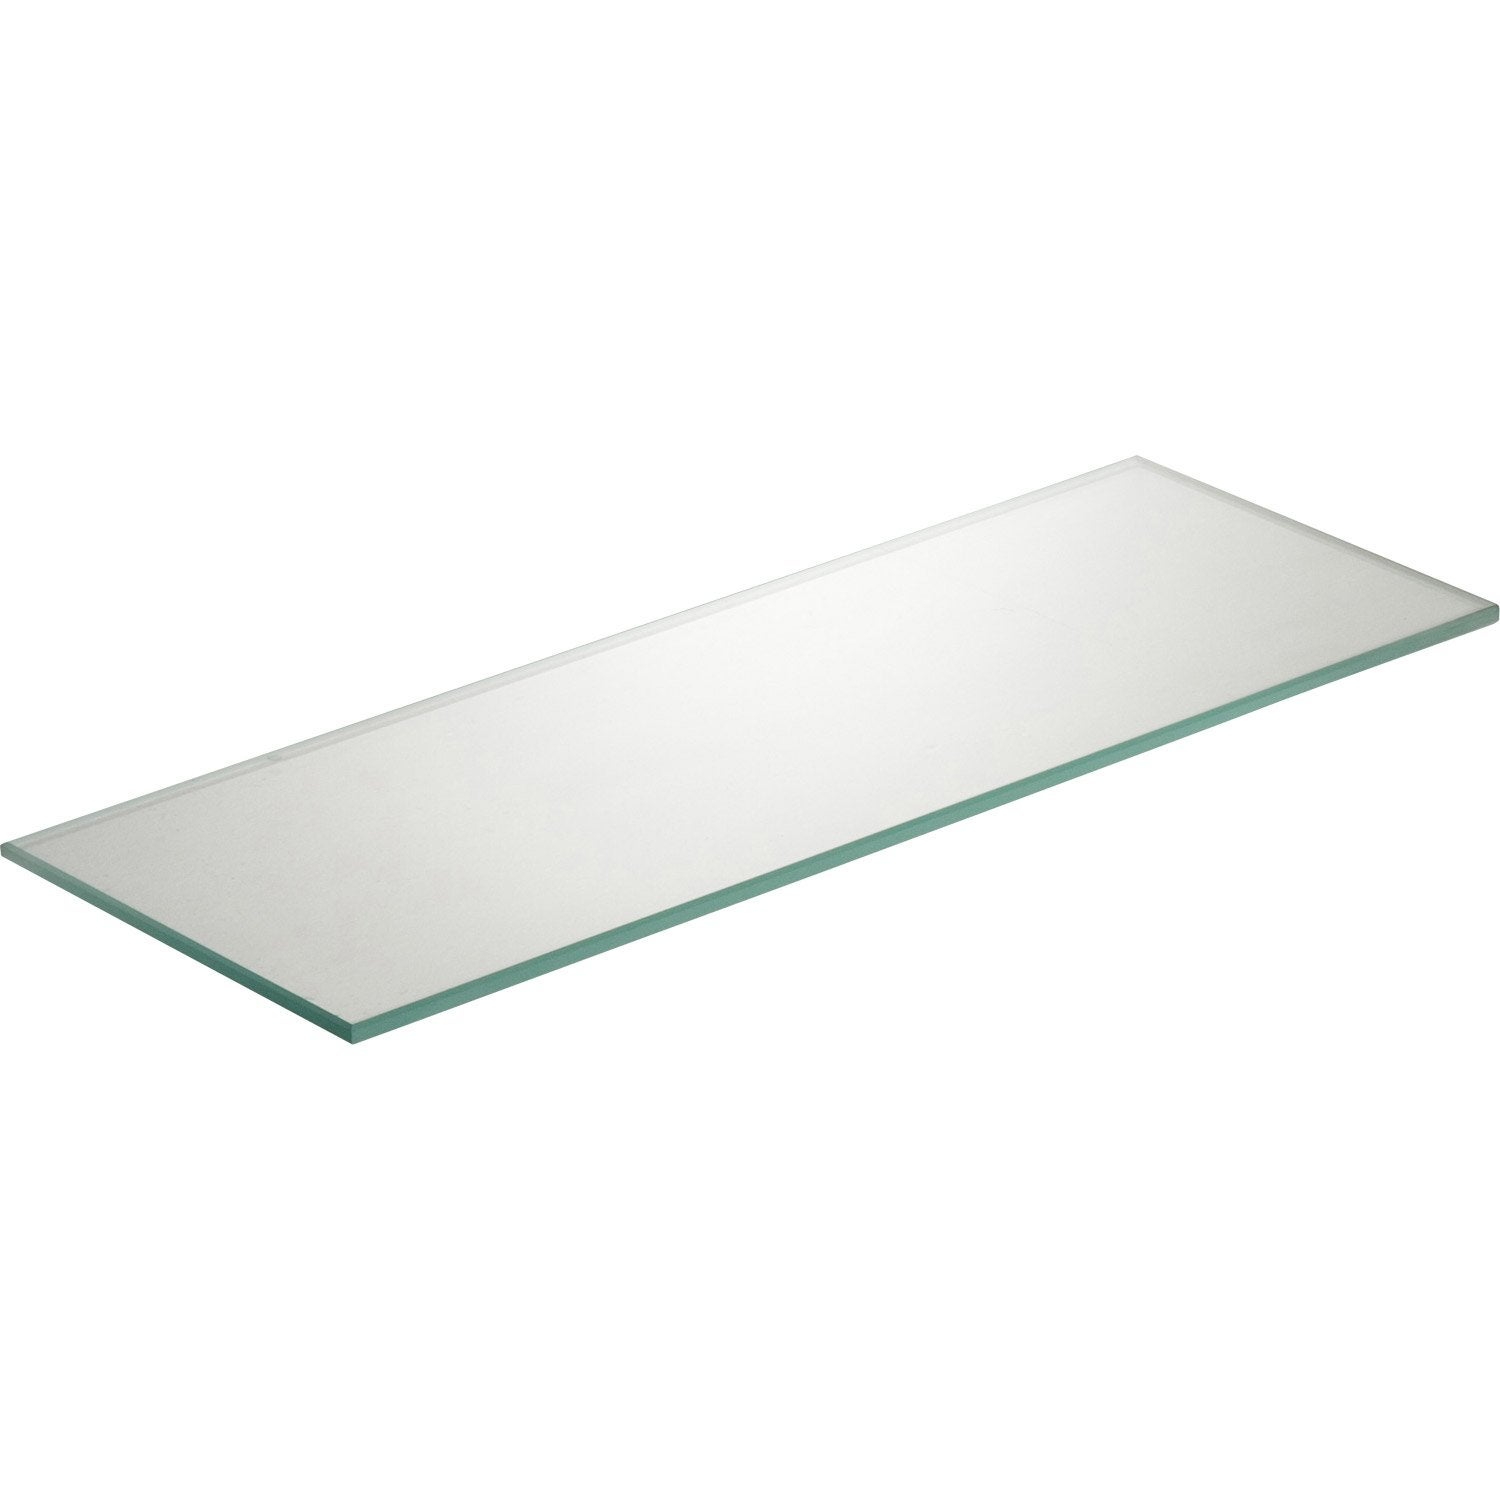 Etag re murale verre transparent glass style l 40 x p 15 cm p 6 mm lero - Leroy merlin plateau verre ...